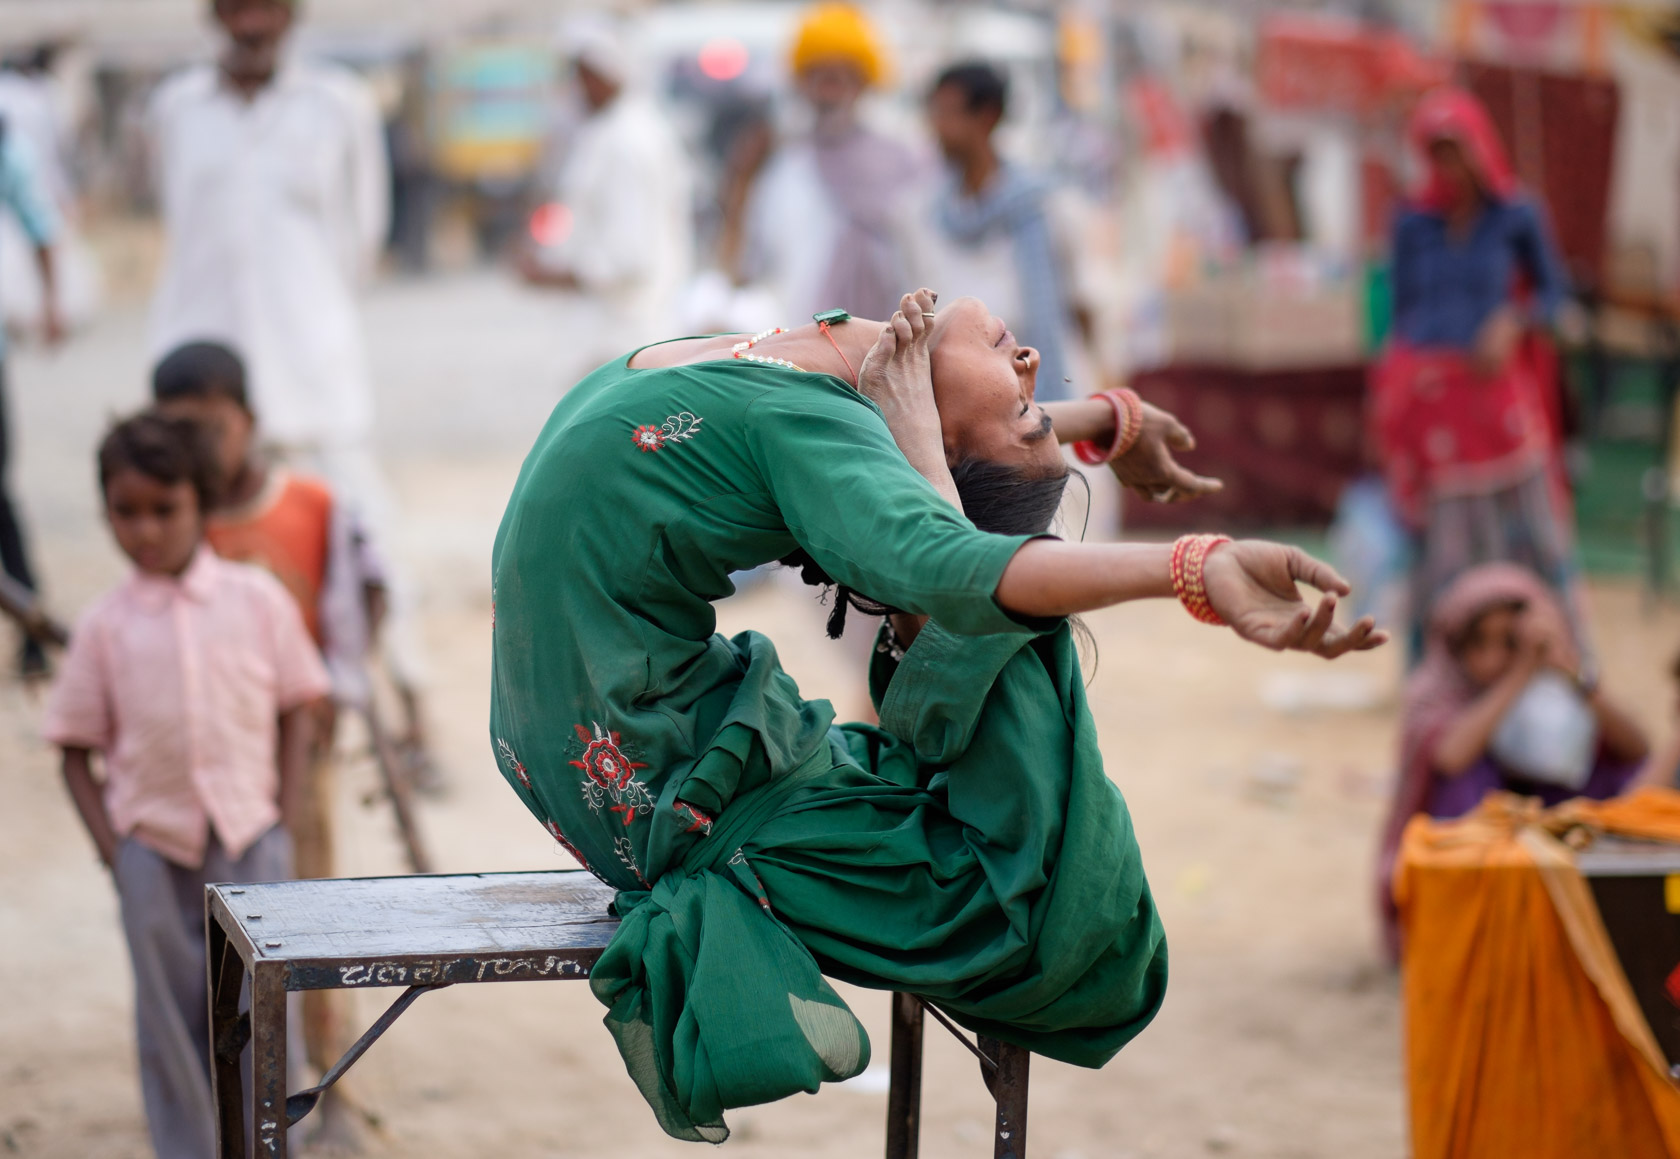 Street Performer, Pushkar, India